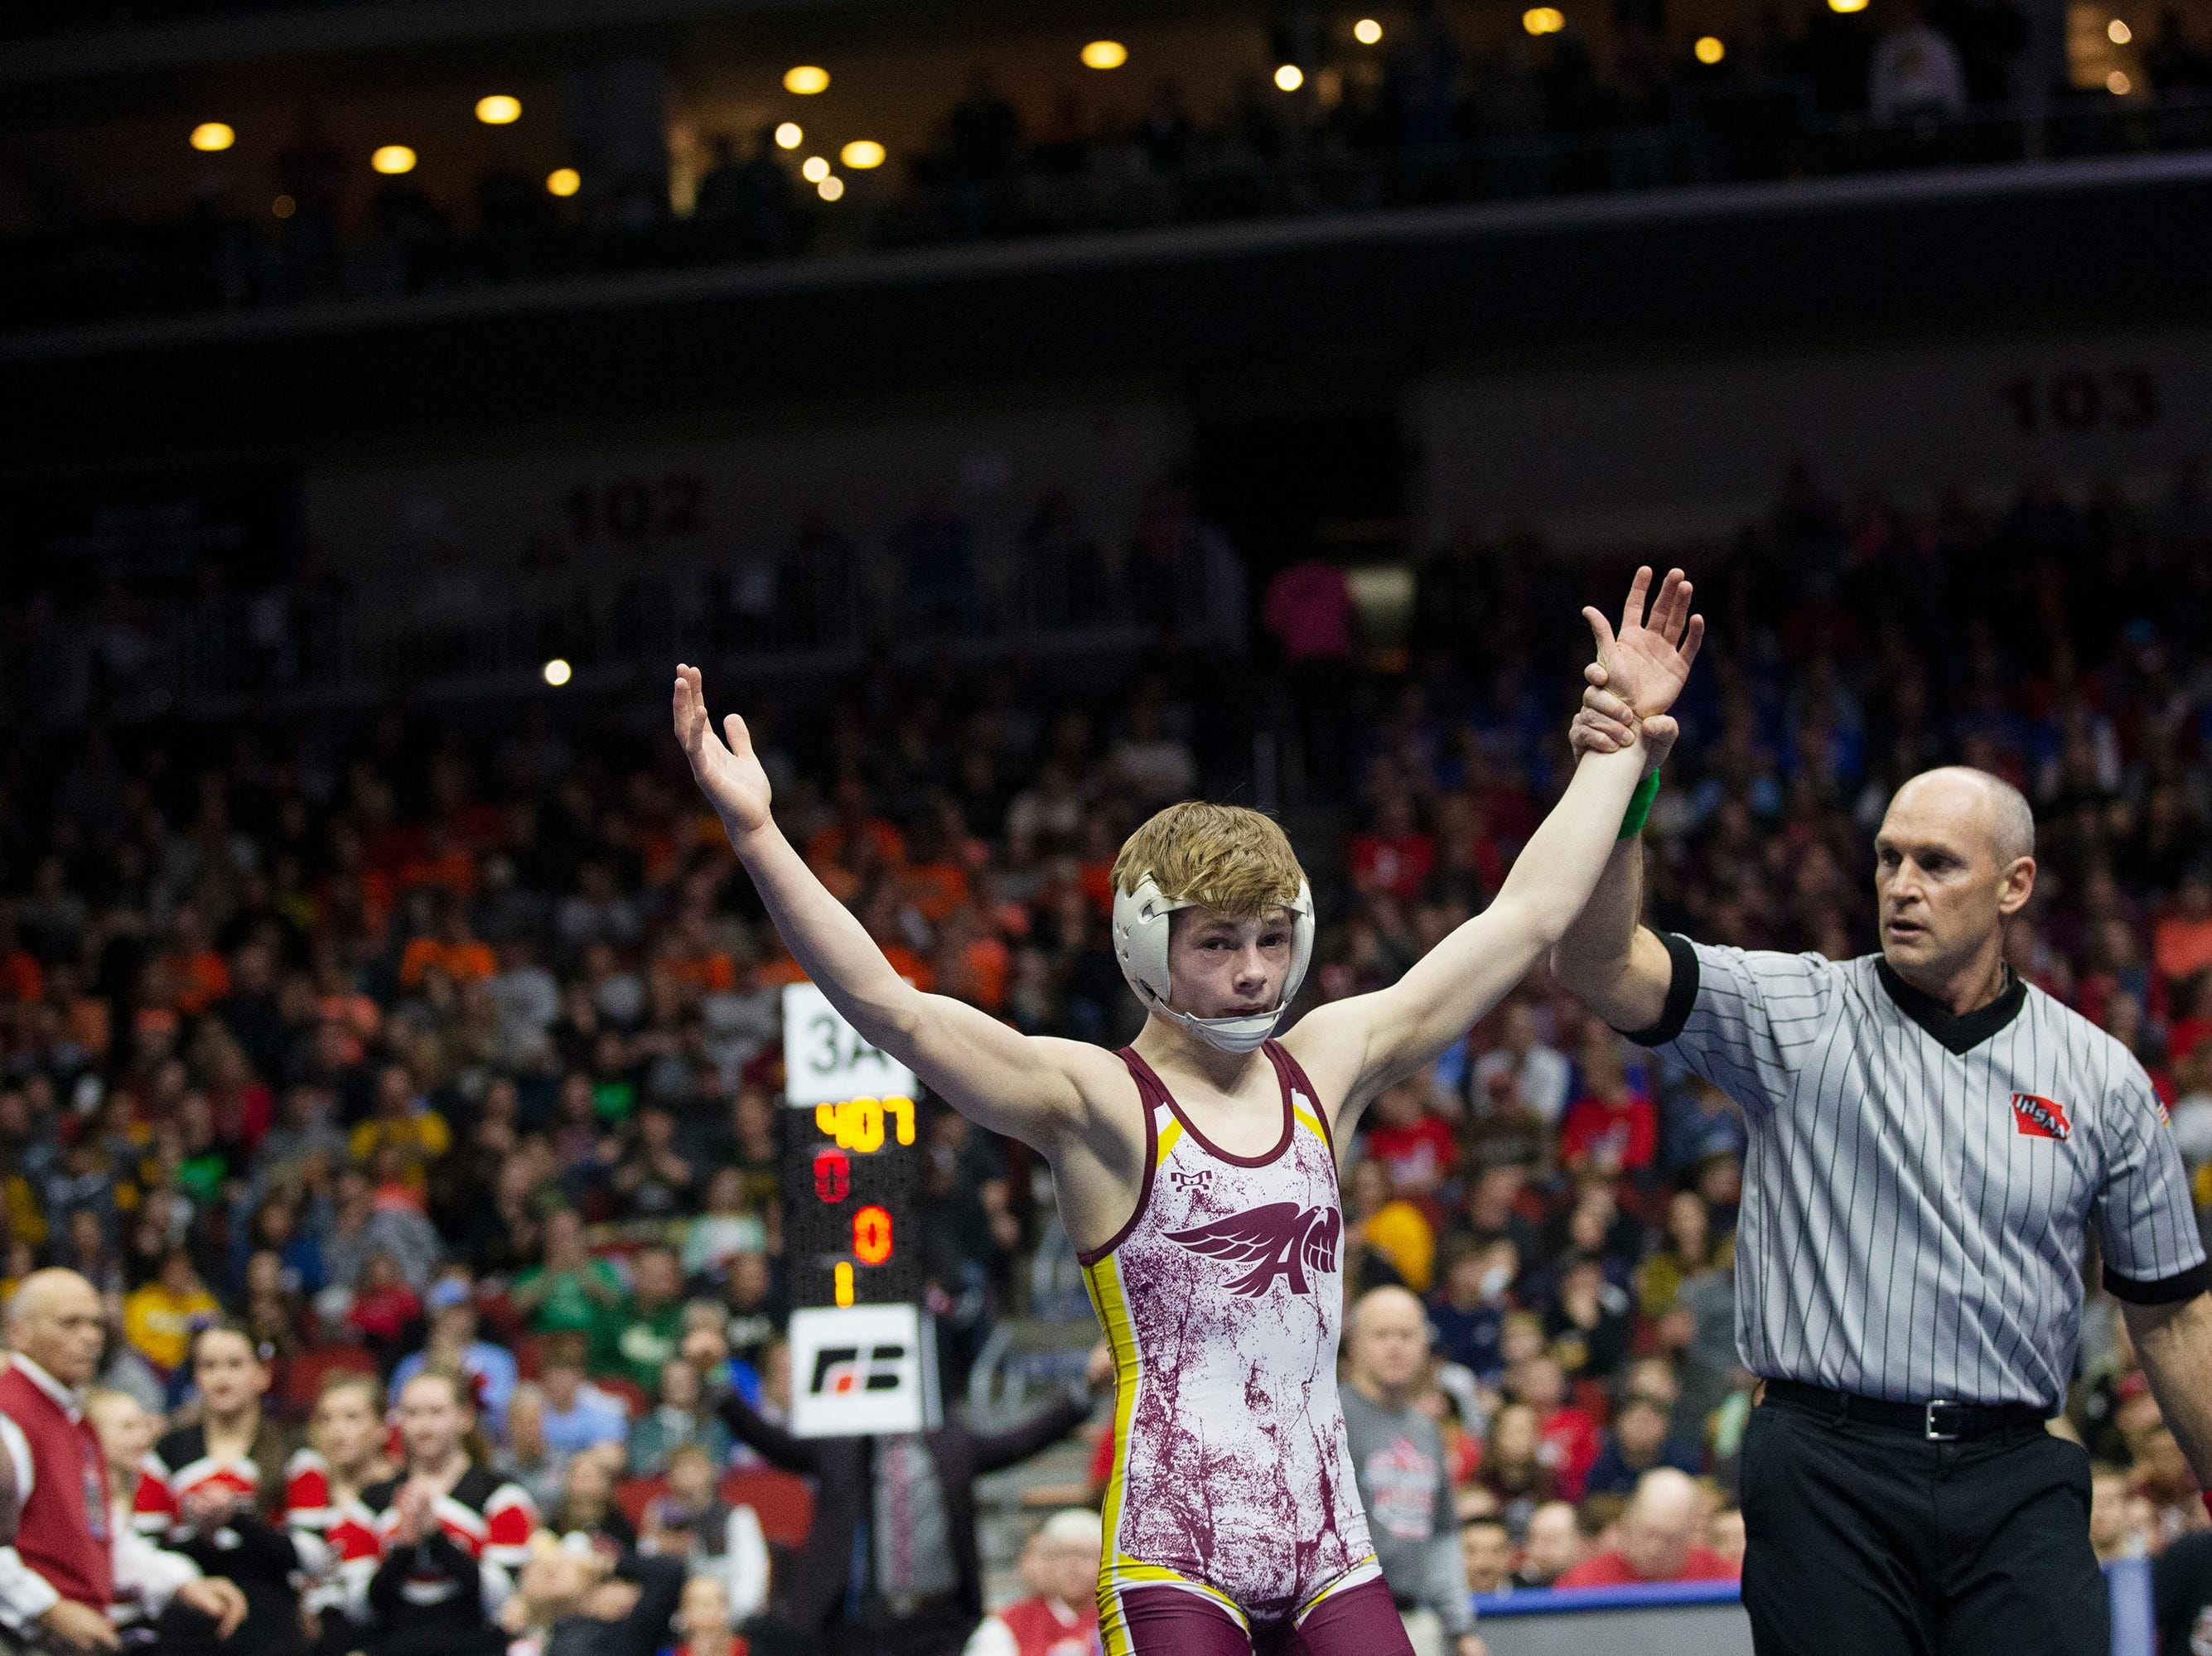 Ankeny's Trever Anderson wins the 106 pound Class 3A championship match against Mason City's Jace Rhodes during the Iowa high school state wrestling tournament on Saturday, Feb. 16, 2019 in Wells Fargo Arena.